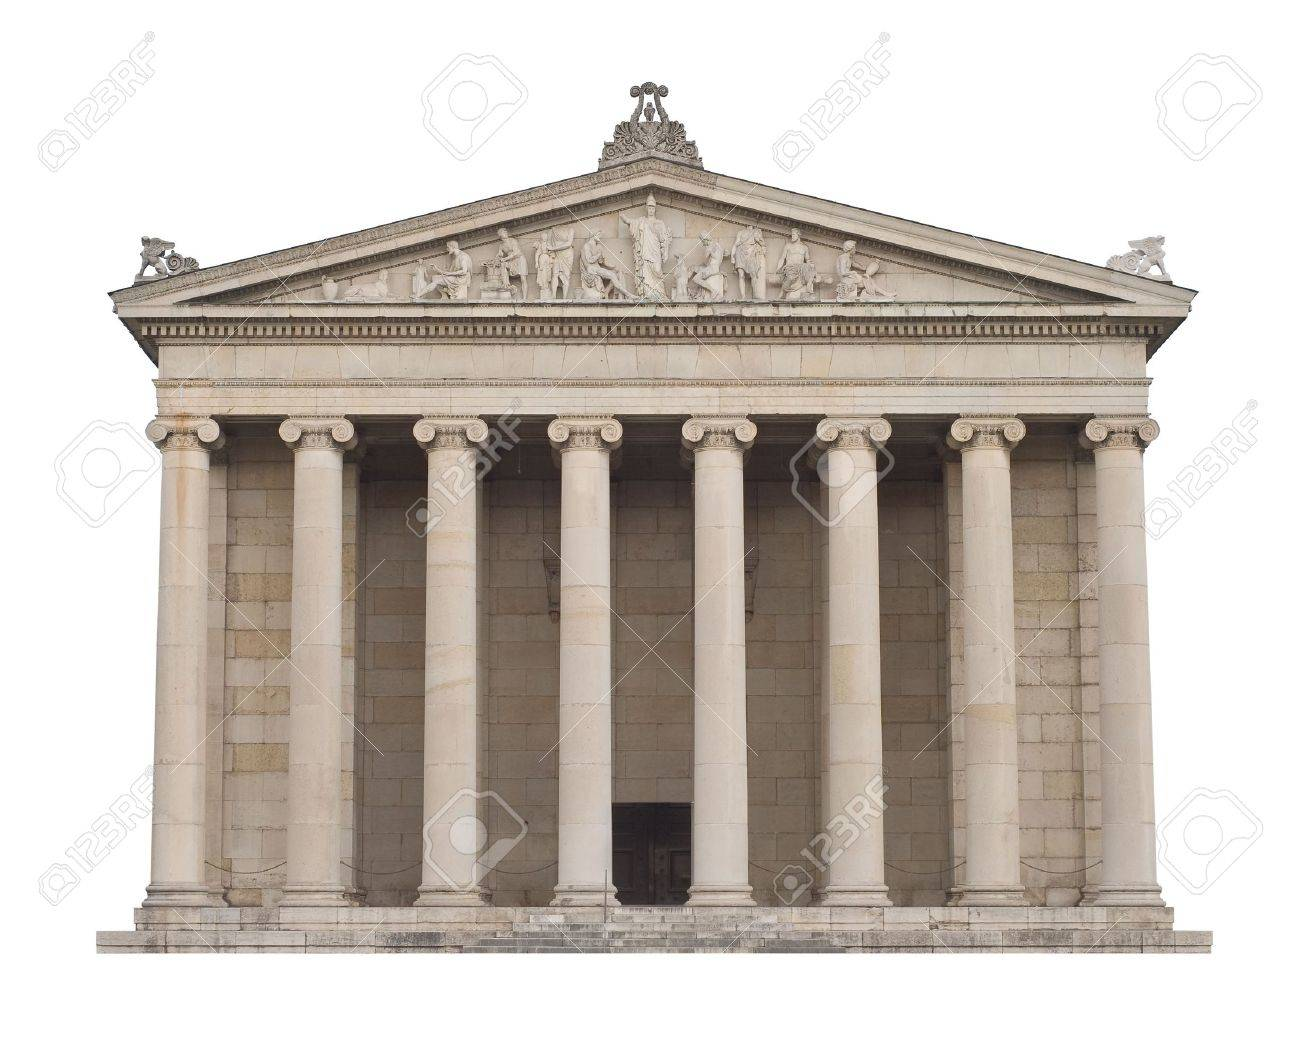 images about greek architecture on pinterest   classical         greek architecture